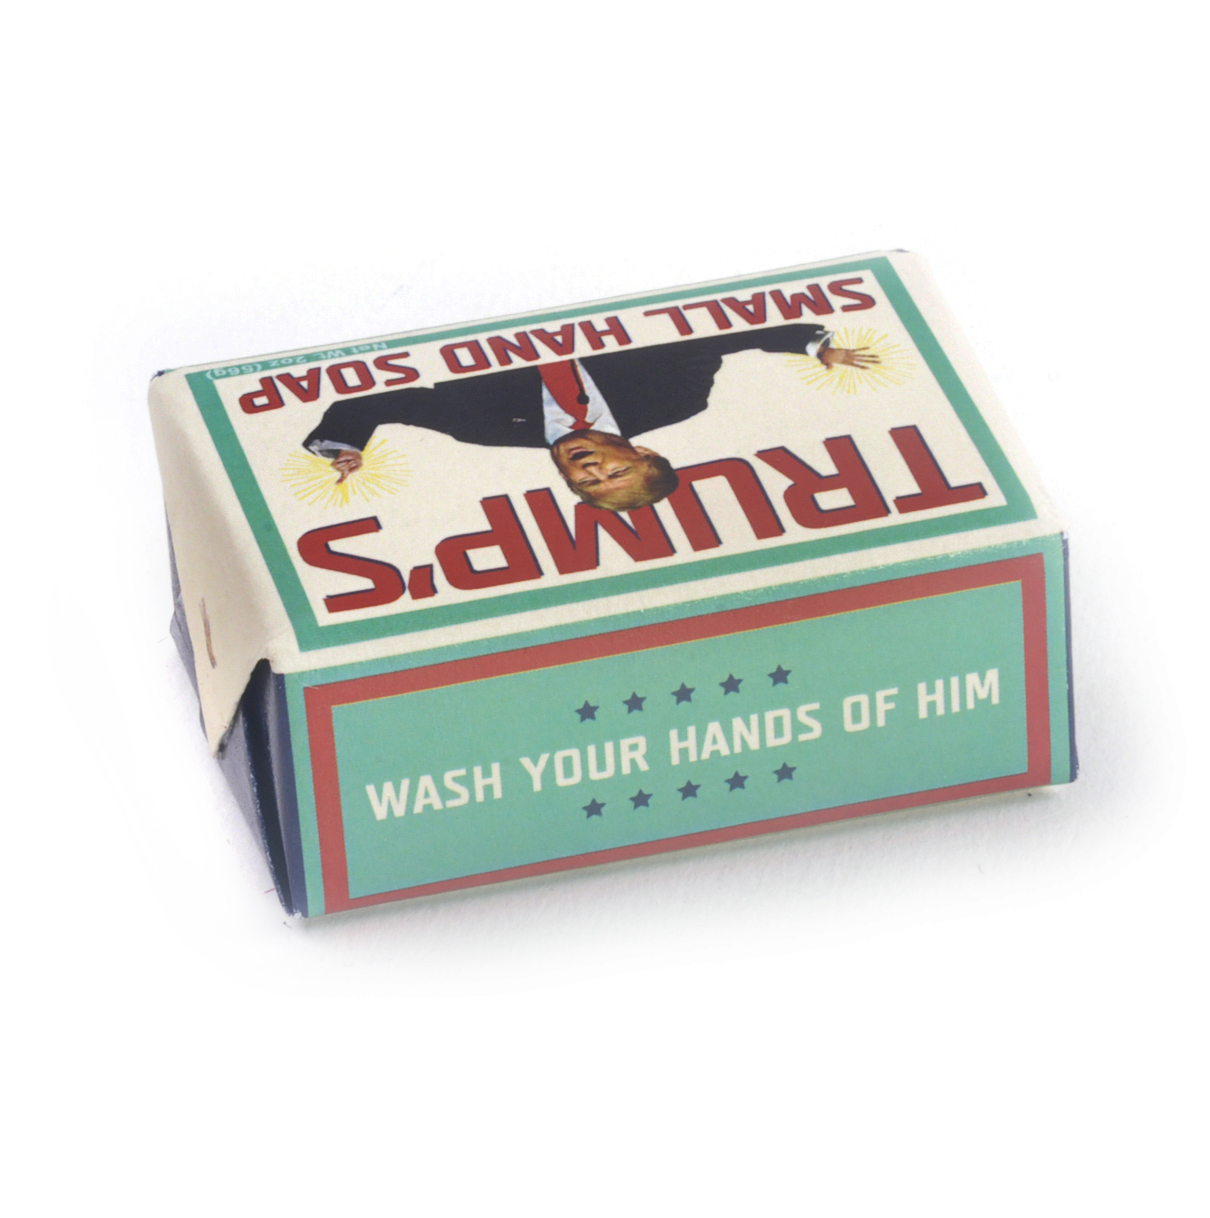 Trumps Small Hand Soap Donald Trump Soap For Dirty